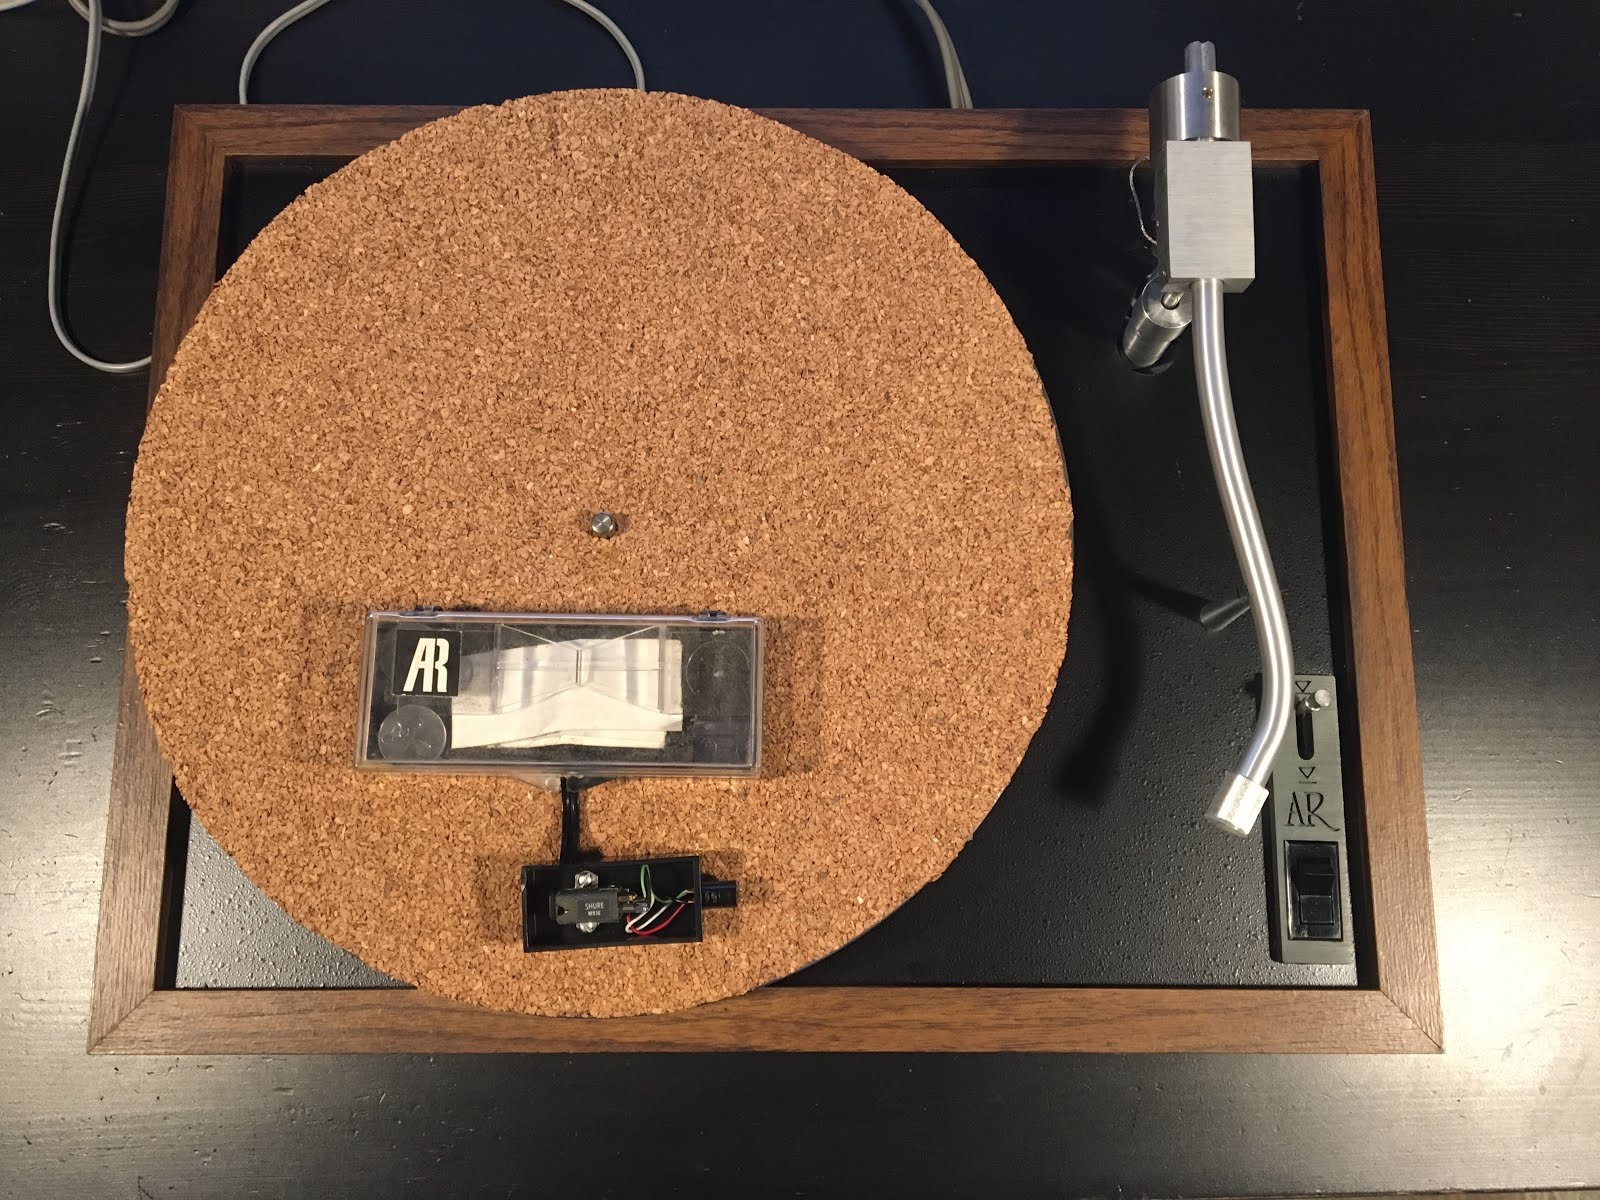 Revolver: 67  Acoustic Research AR XB1 Turntable from 1972